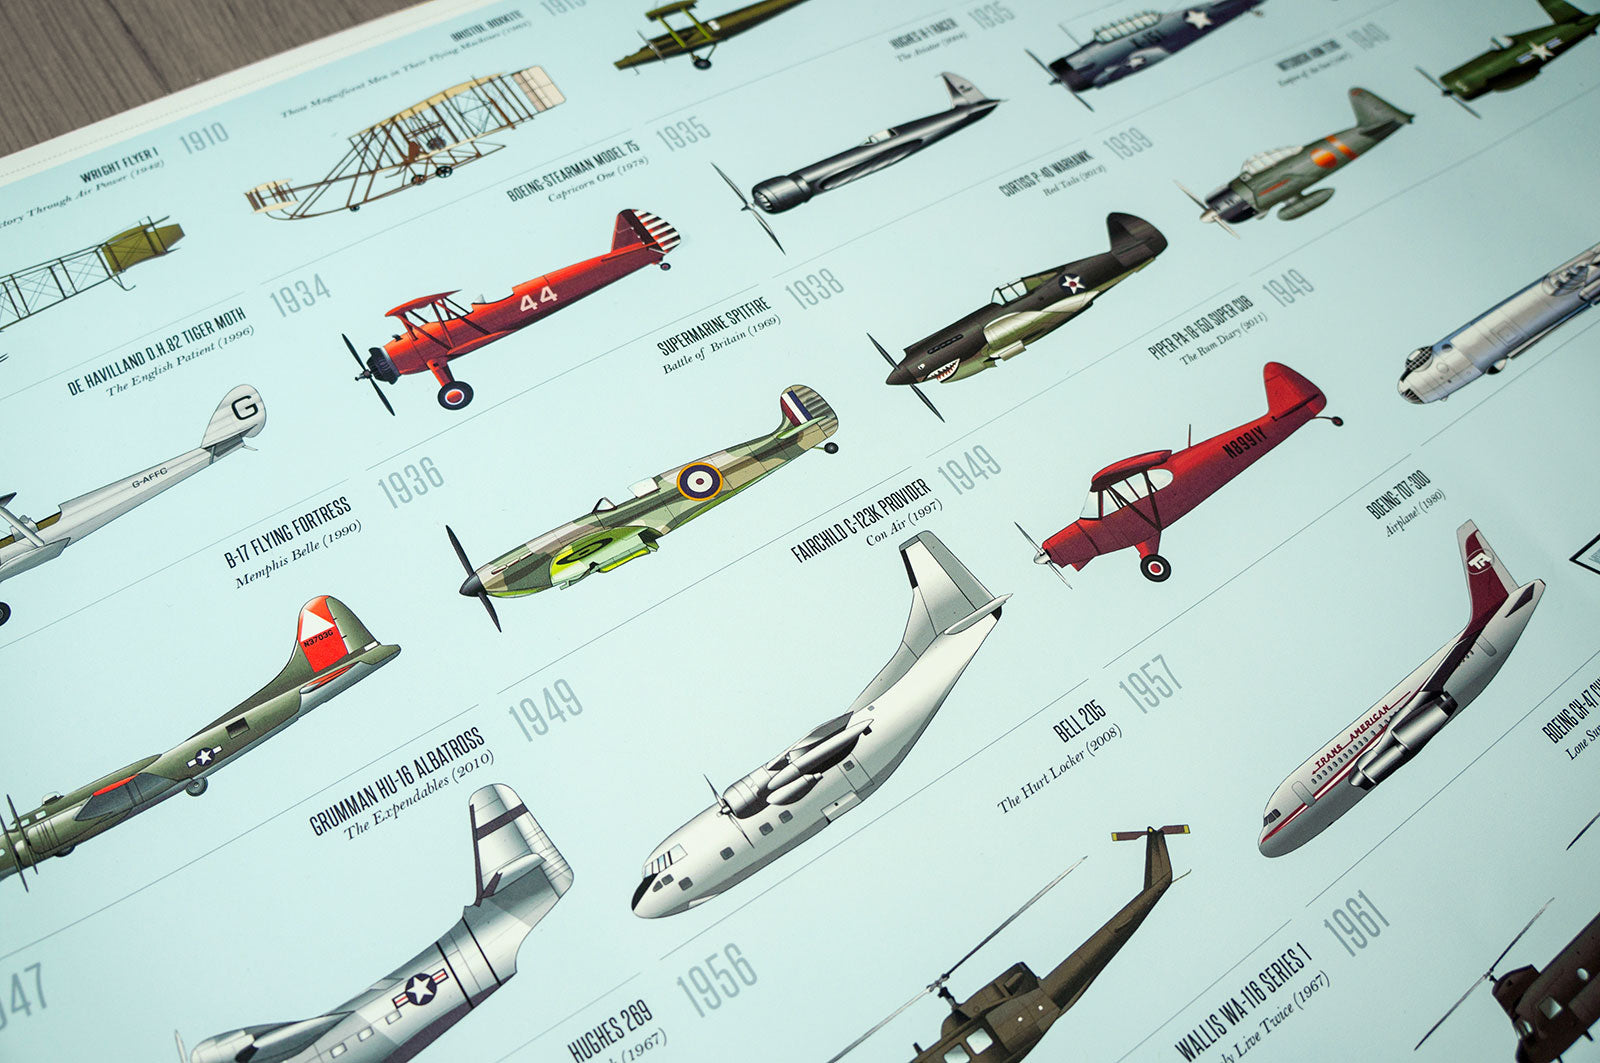 parallax-banner-The Filmography of Aircraft